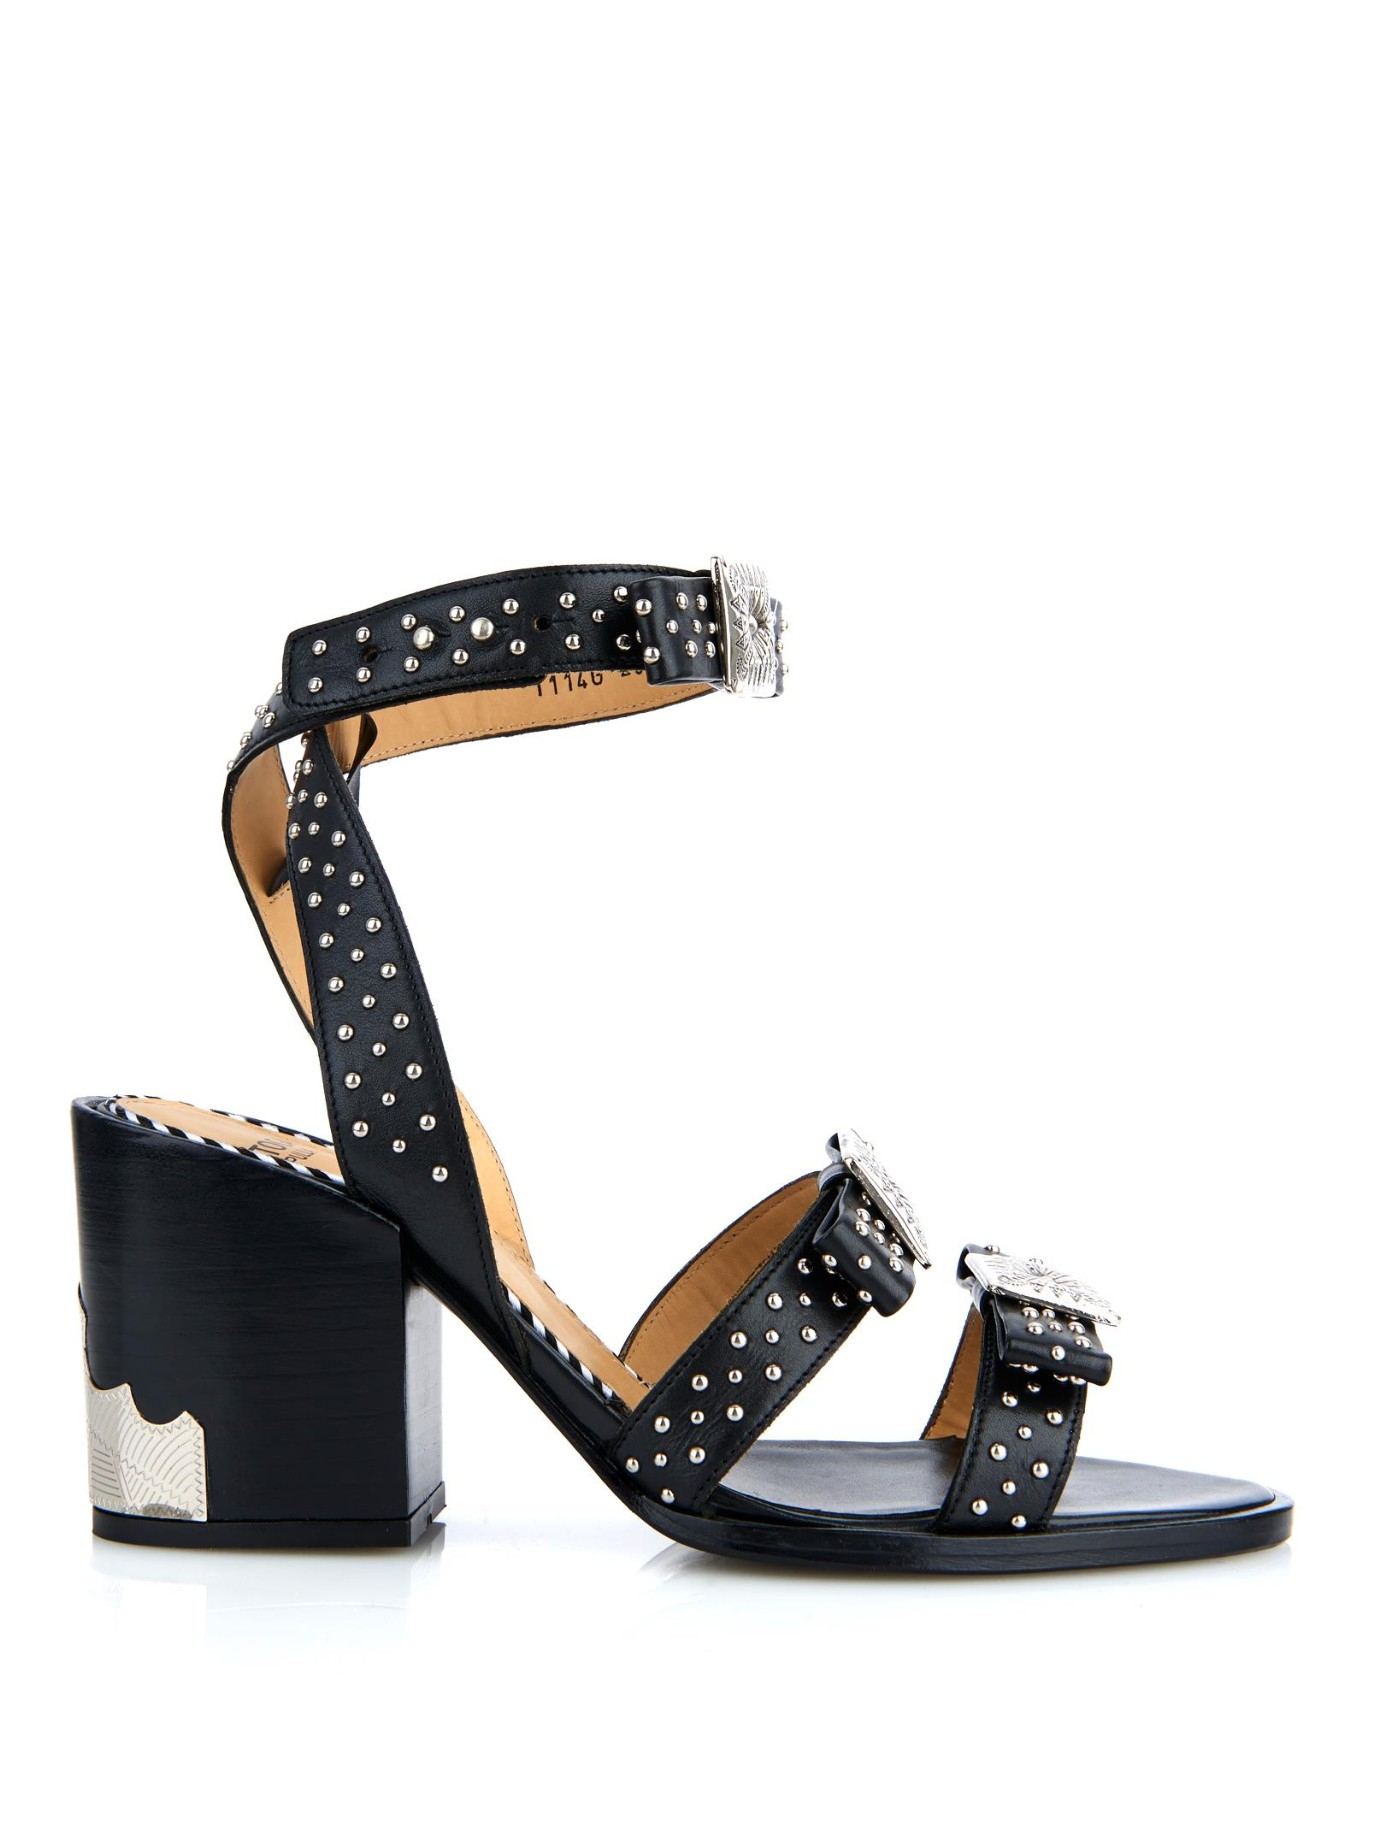 7f9a50736ea Toga Studded Leather Block-Heel Sandals in Black - Lyst